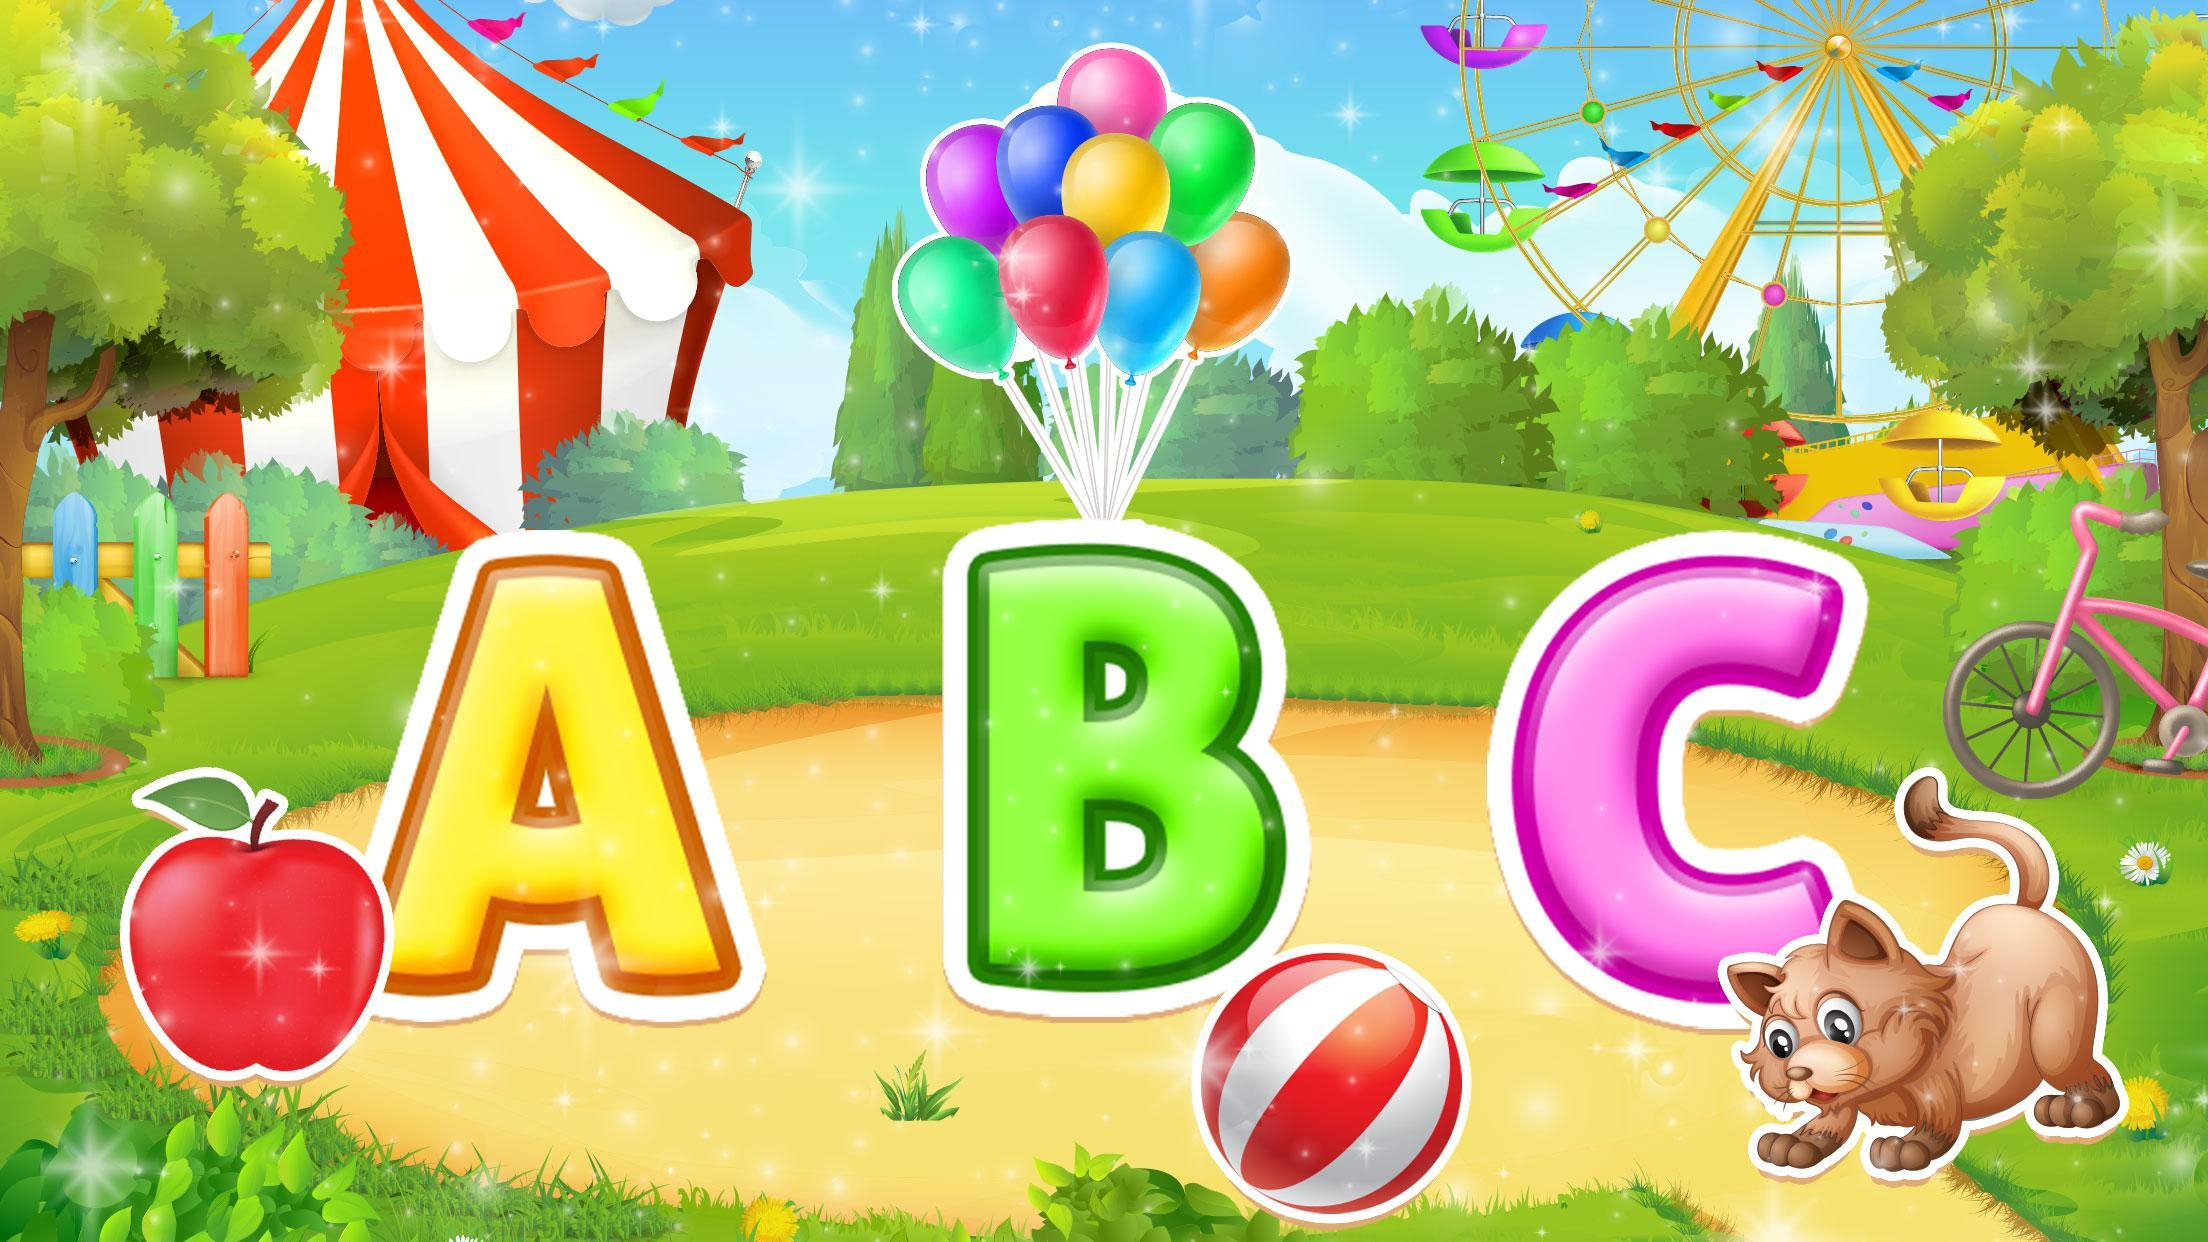 Abc 123 Tracing Games For Toddlers - Abc Learning For with regard to Abc 123 Tracing For Toddlers